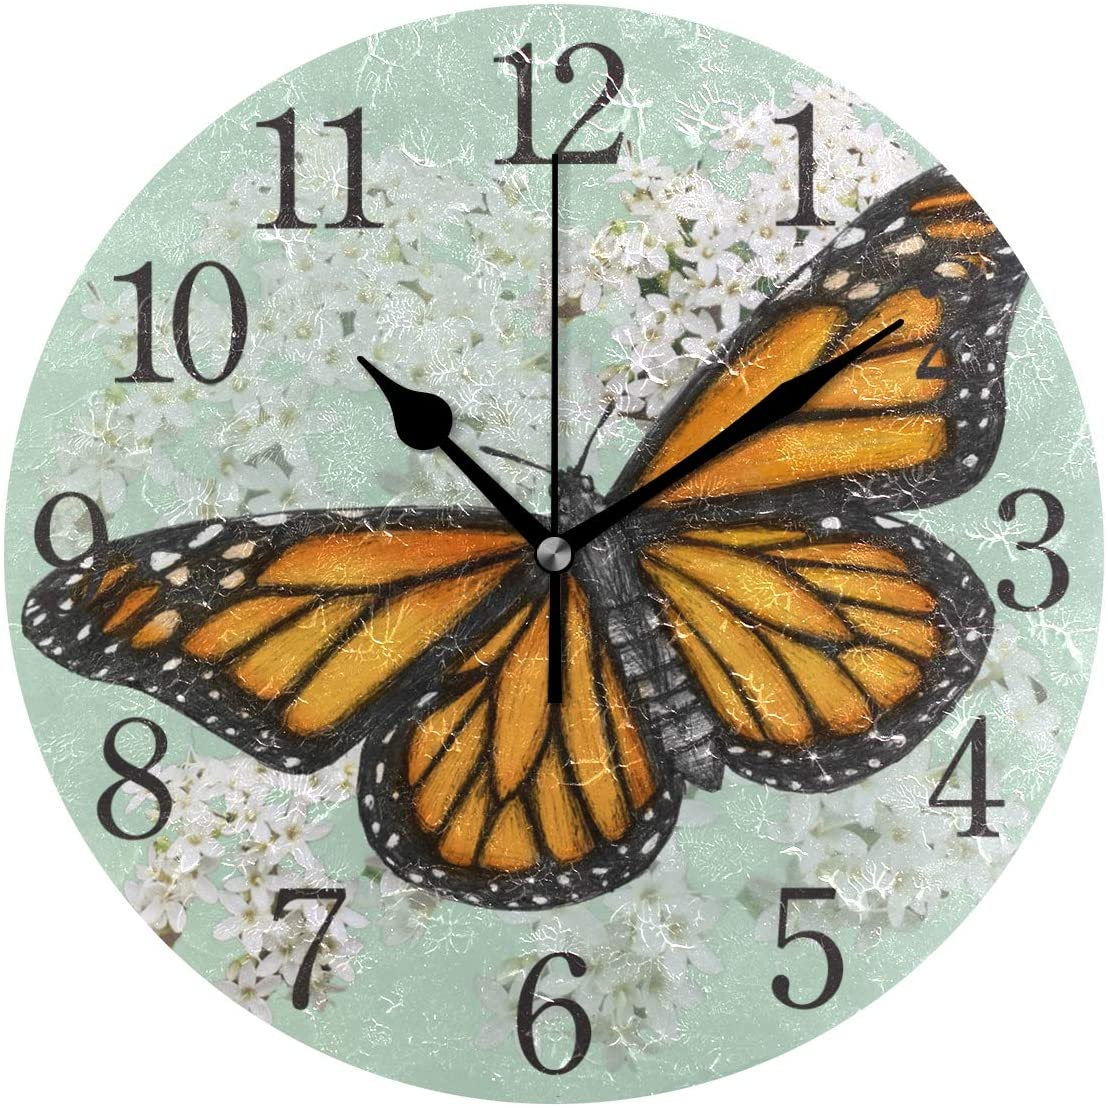 Wall Clock Monarch Butterfly Illustration Drawn in Pen with Digital Color Silent Non Ticking Operated Round Easy to Read Home Office School Clock